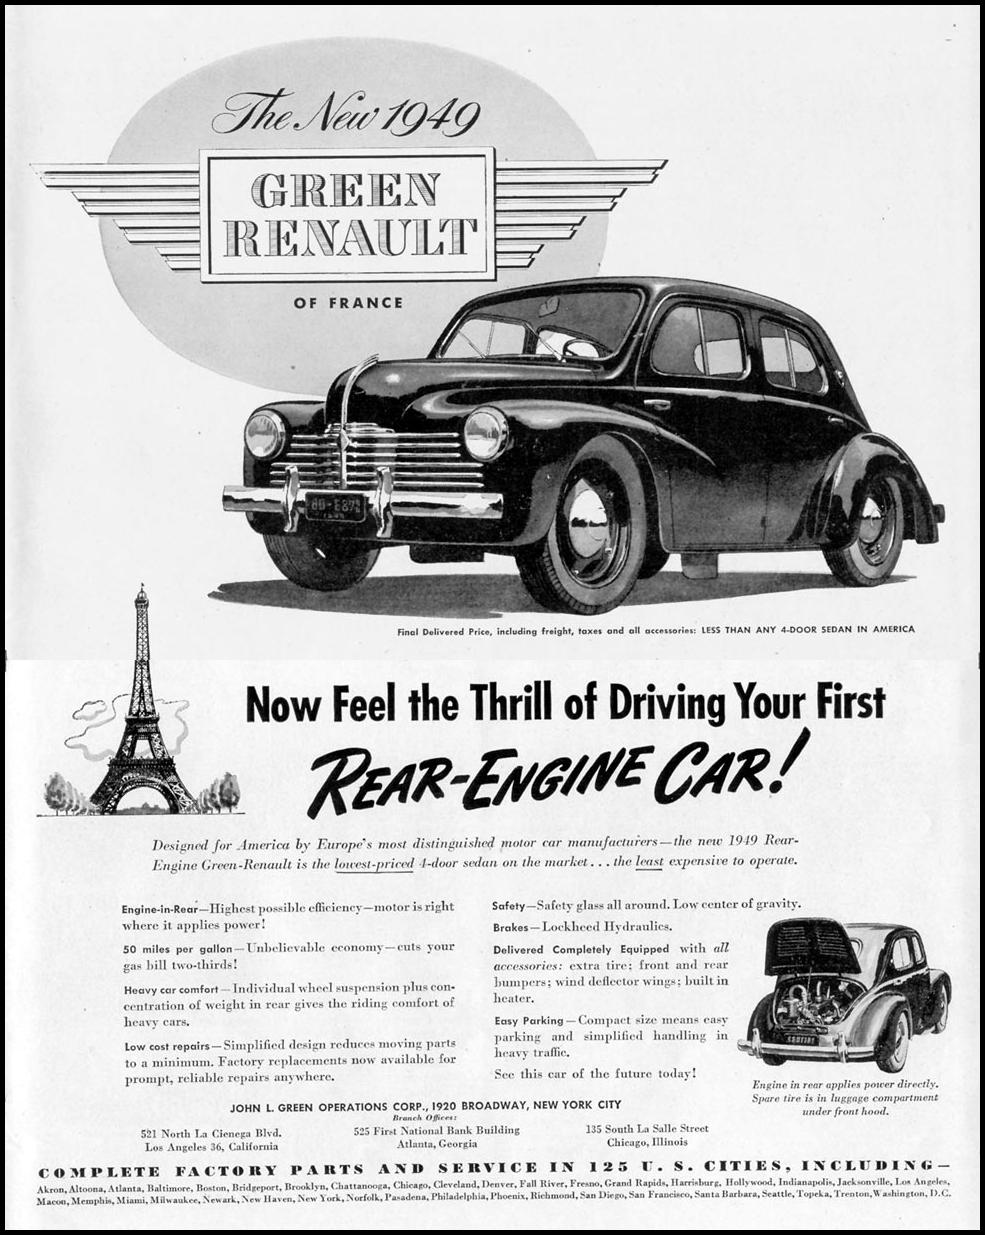 RENAULT AUTOMOBILES